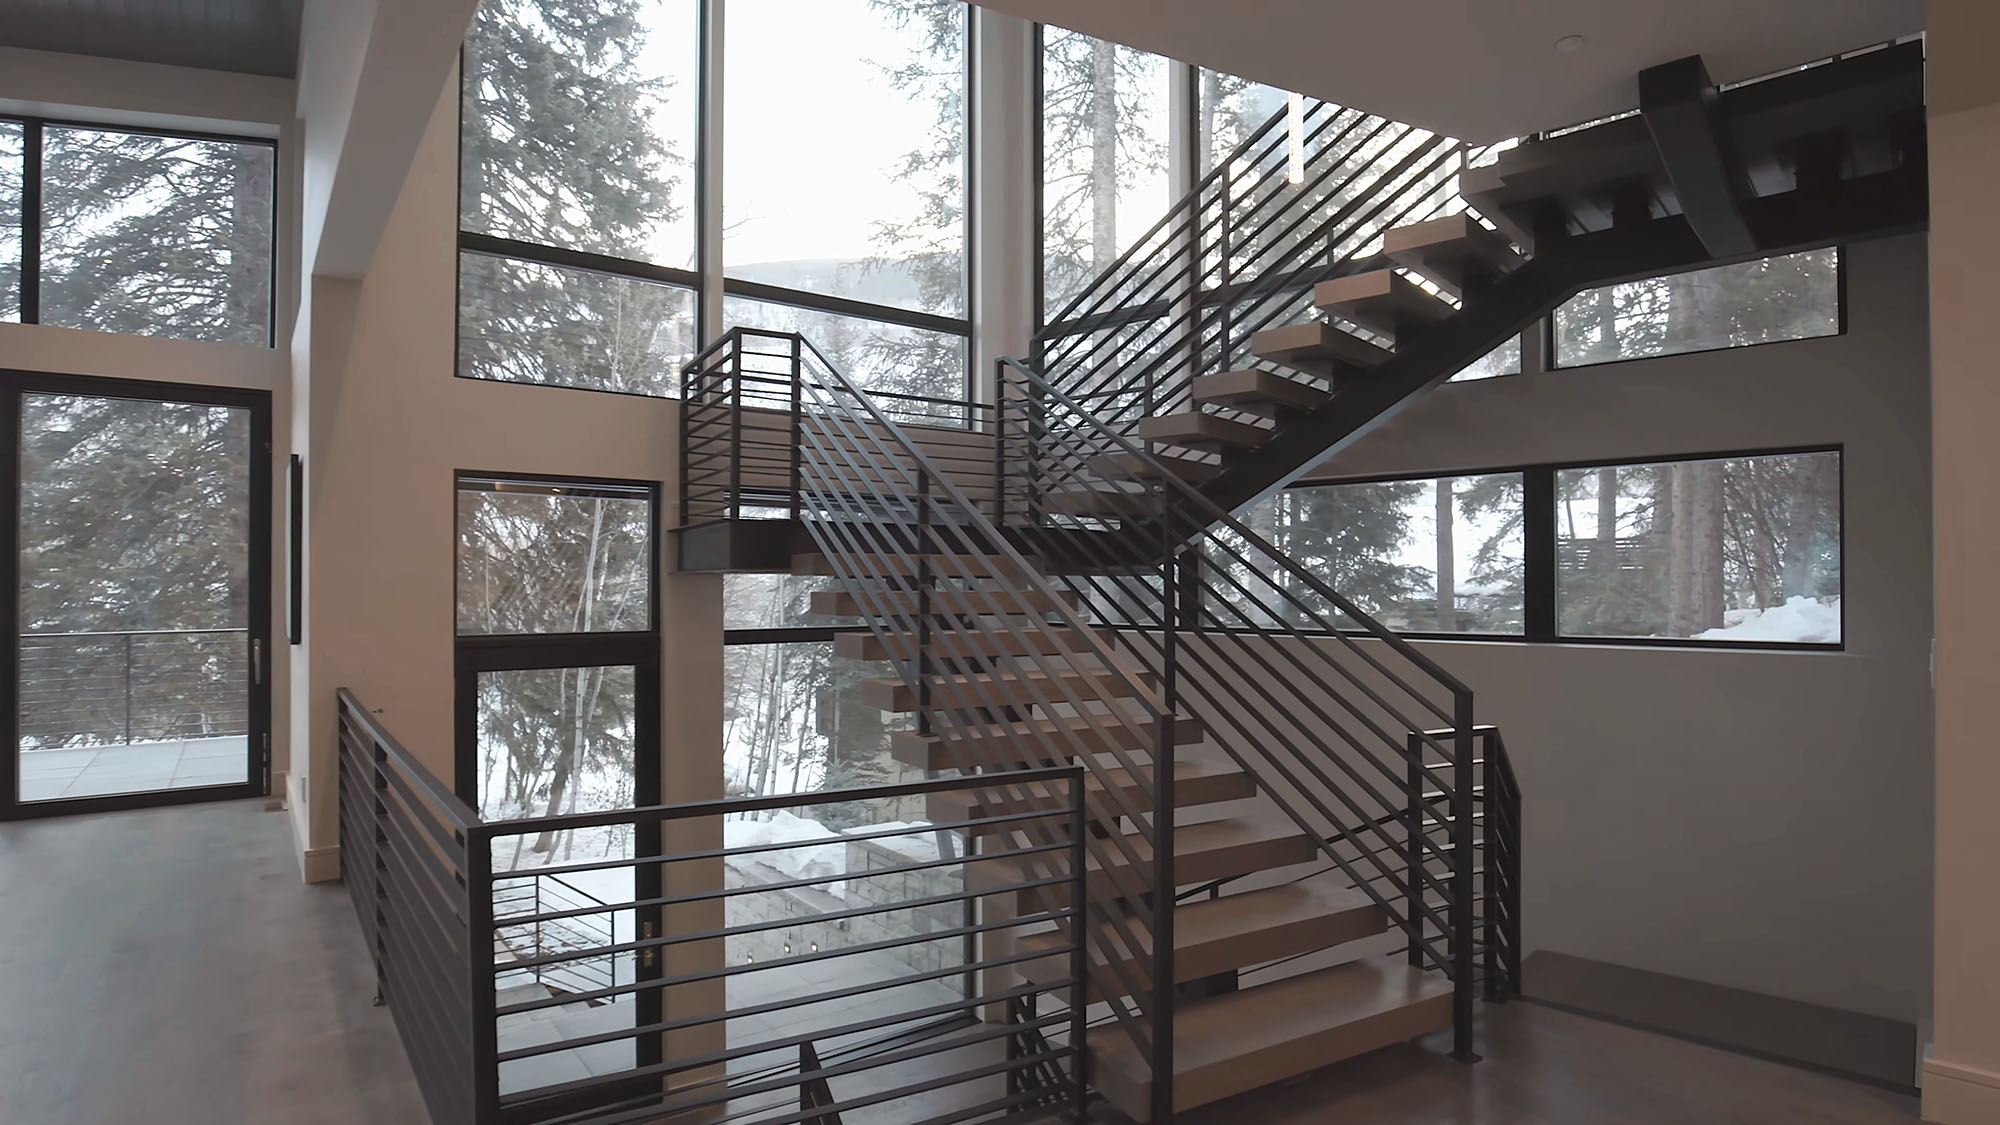 Windowing metal and wood modern staircase in front of a wall of glass.